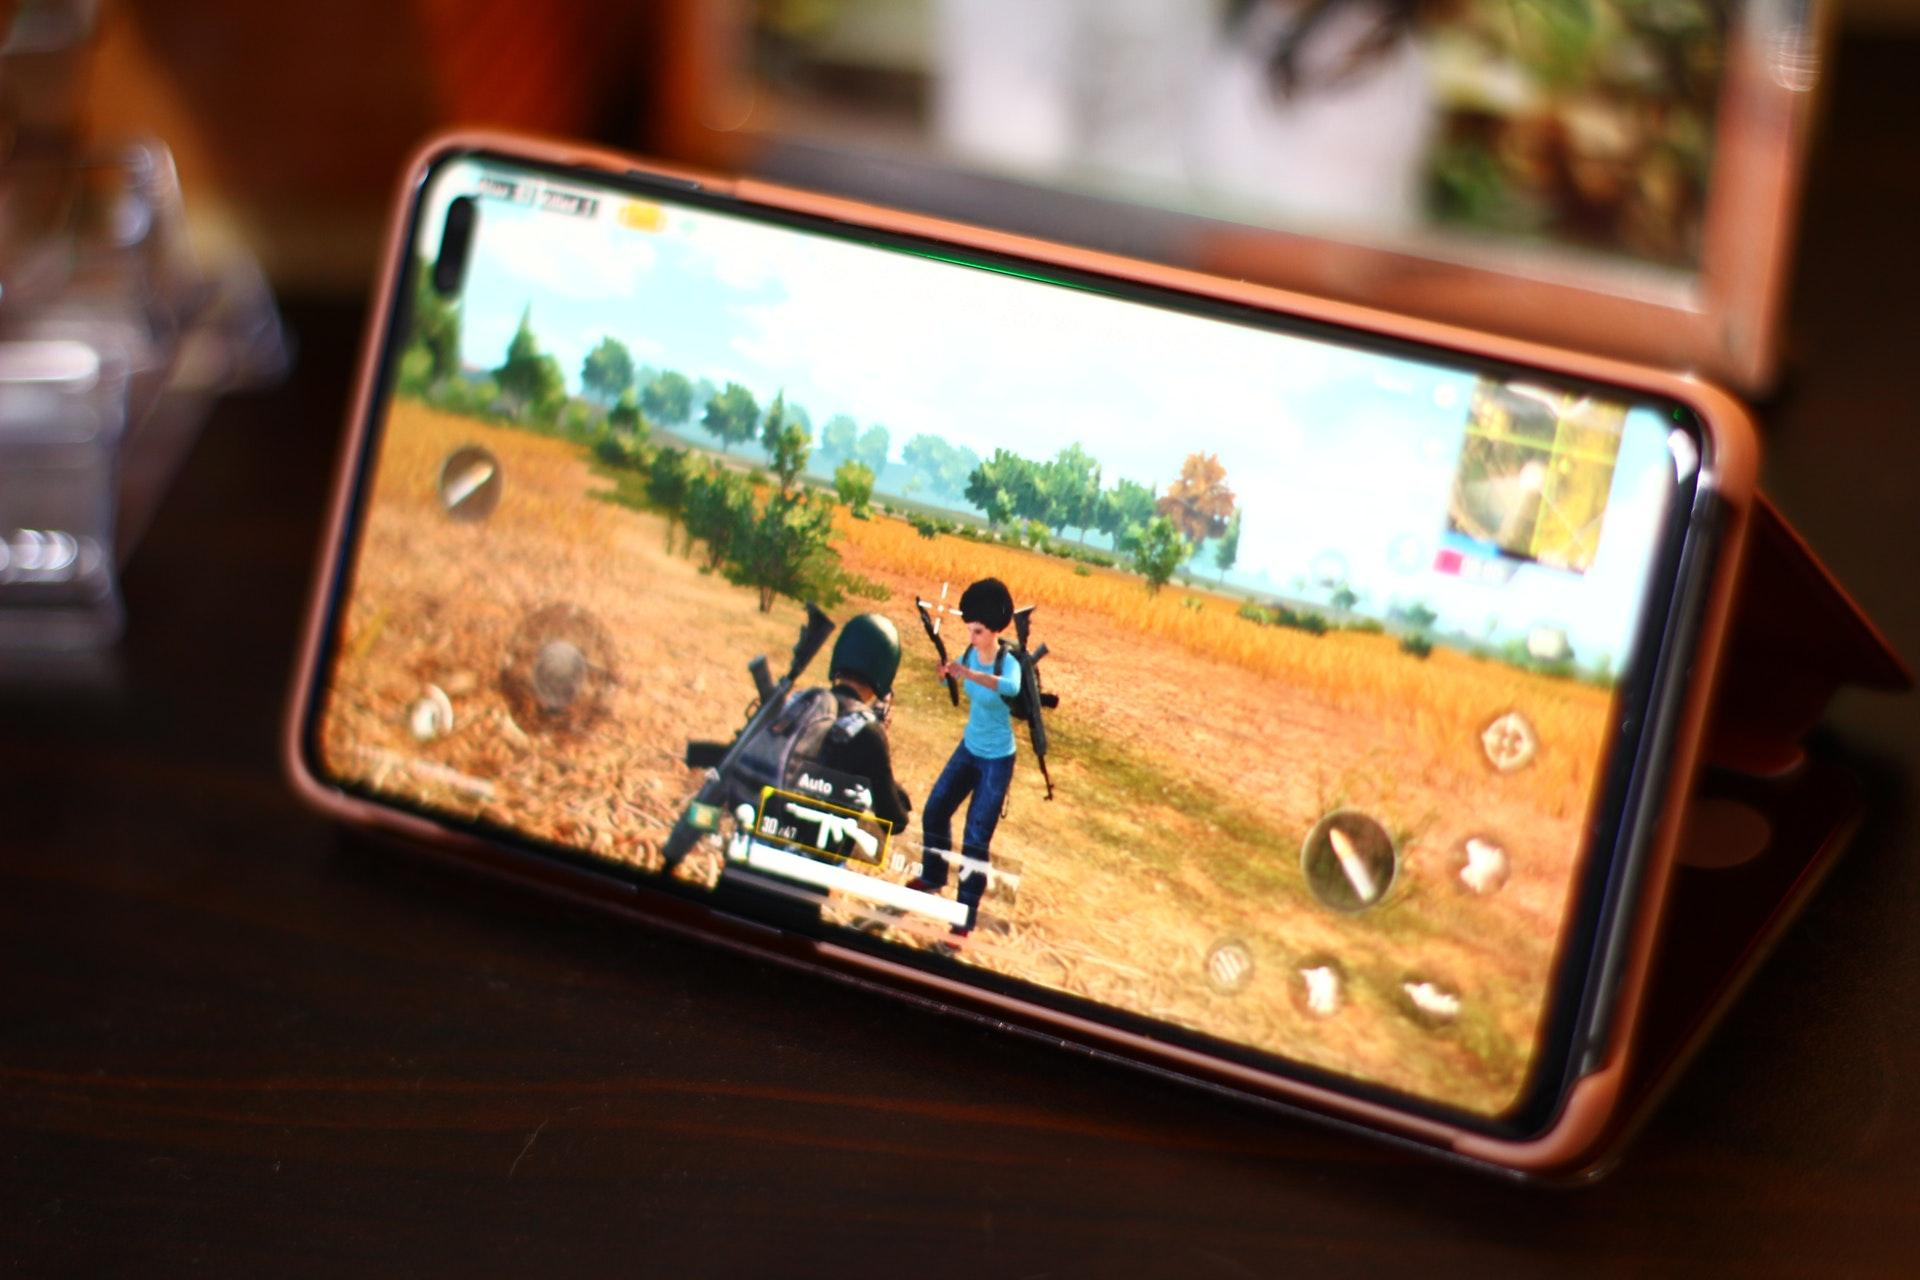 android-gaming-pubg-mobile-samsung-s10-2568621